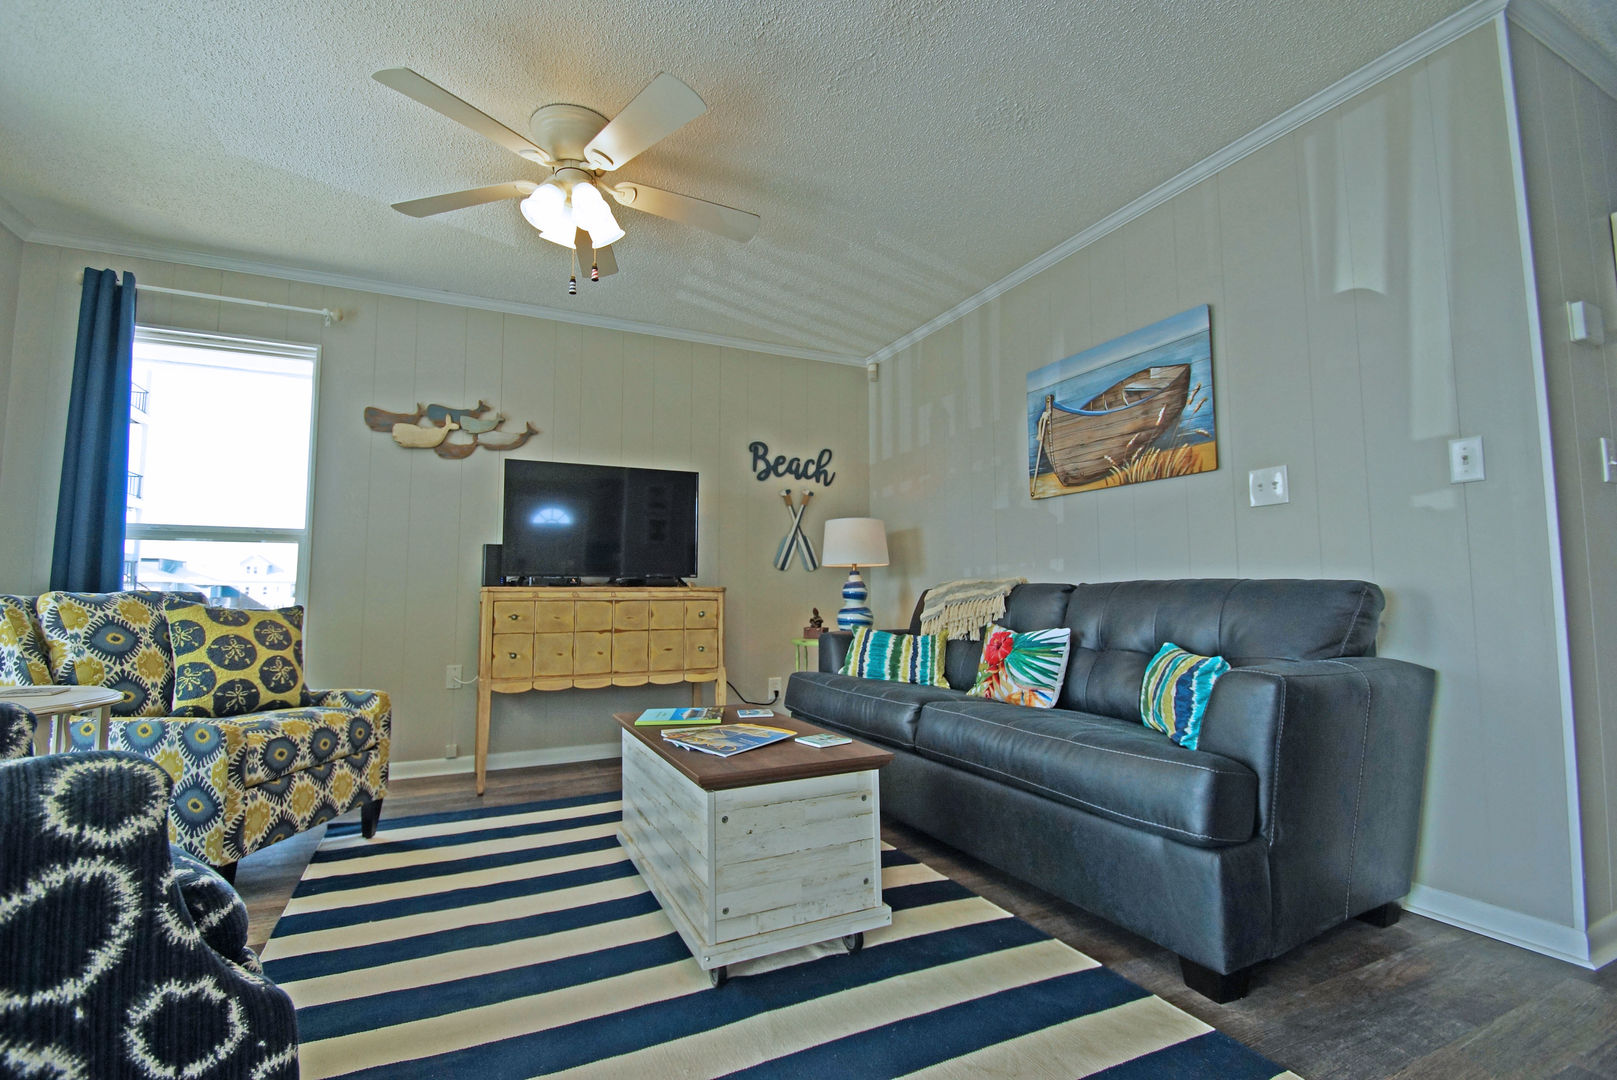 Sofa, Arm Chair, Tables, Window, TV, and Ceiling Fan.